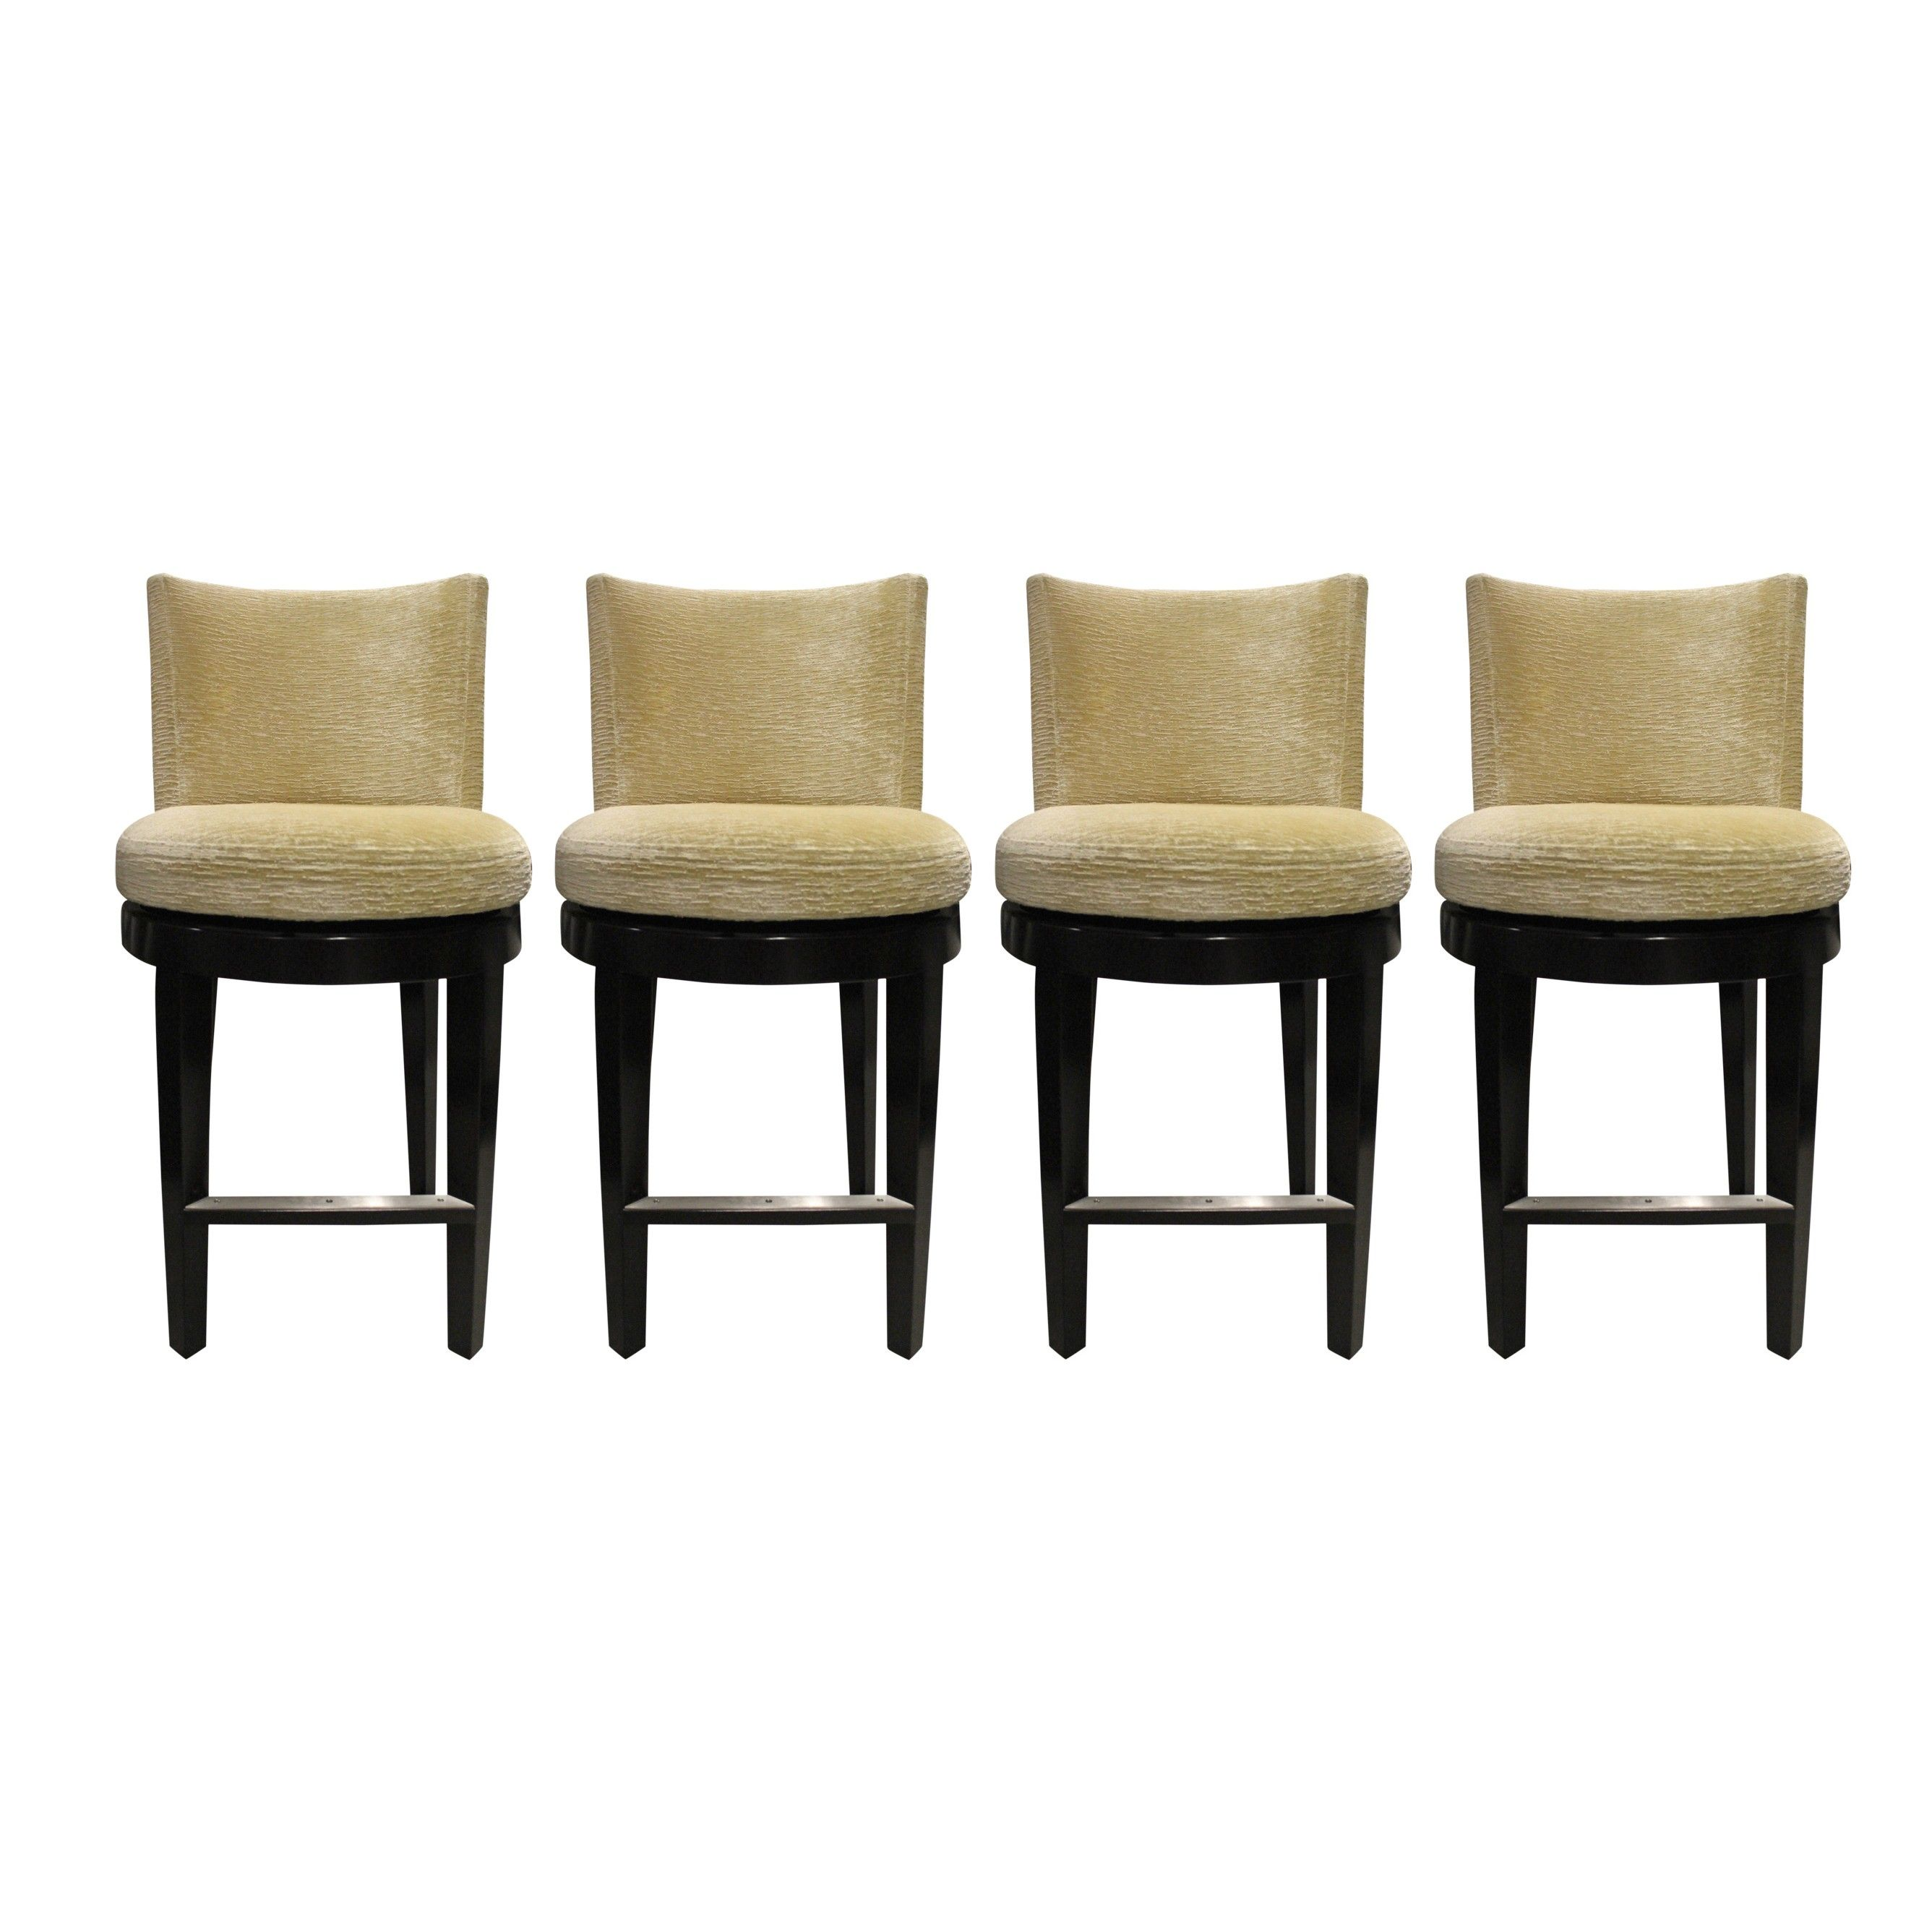 A Rudin 680 Swivel Counter Stools Set With Images Swivel